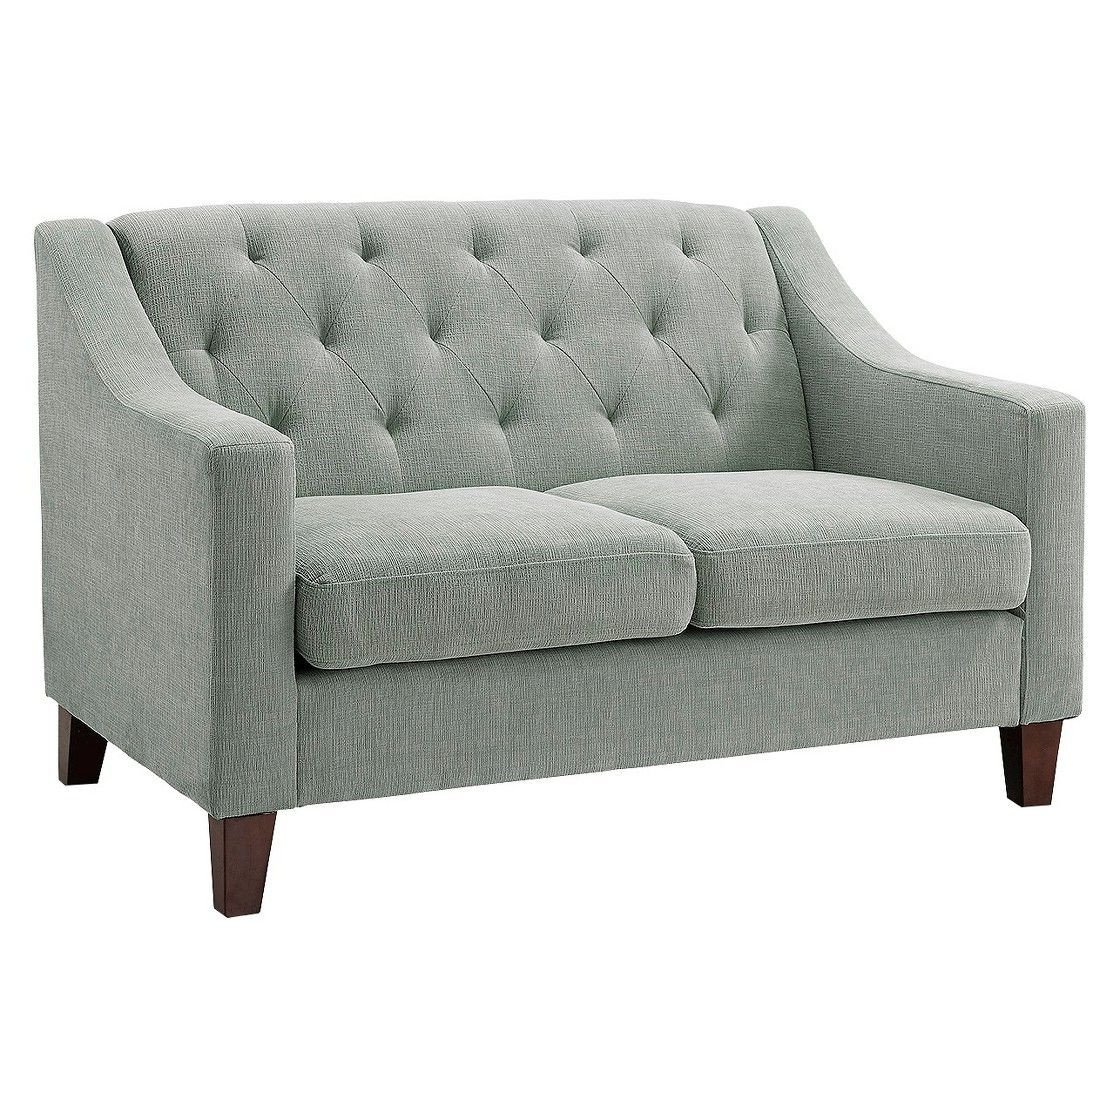 Small Loveseat for Bedroom Awesome Tufted Upholstered Loveseat formal Livingroom